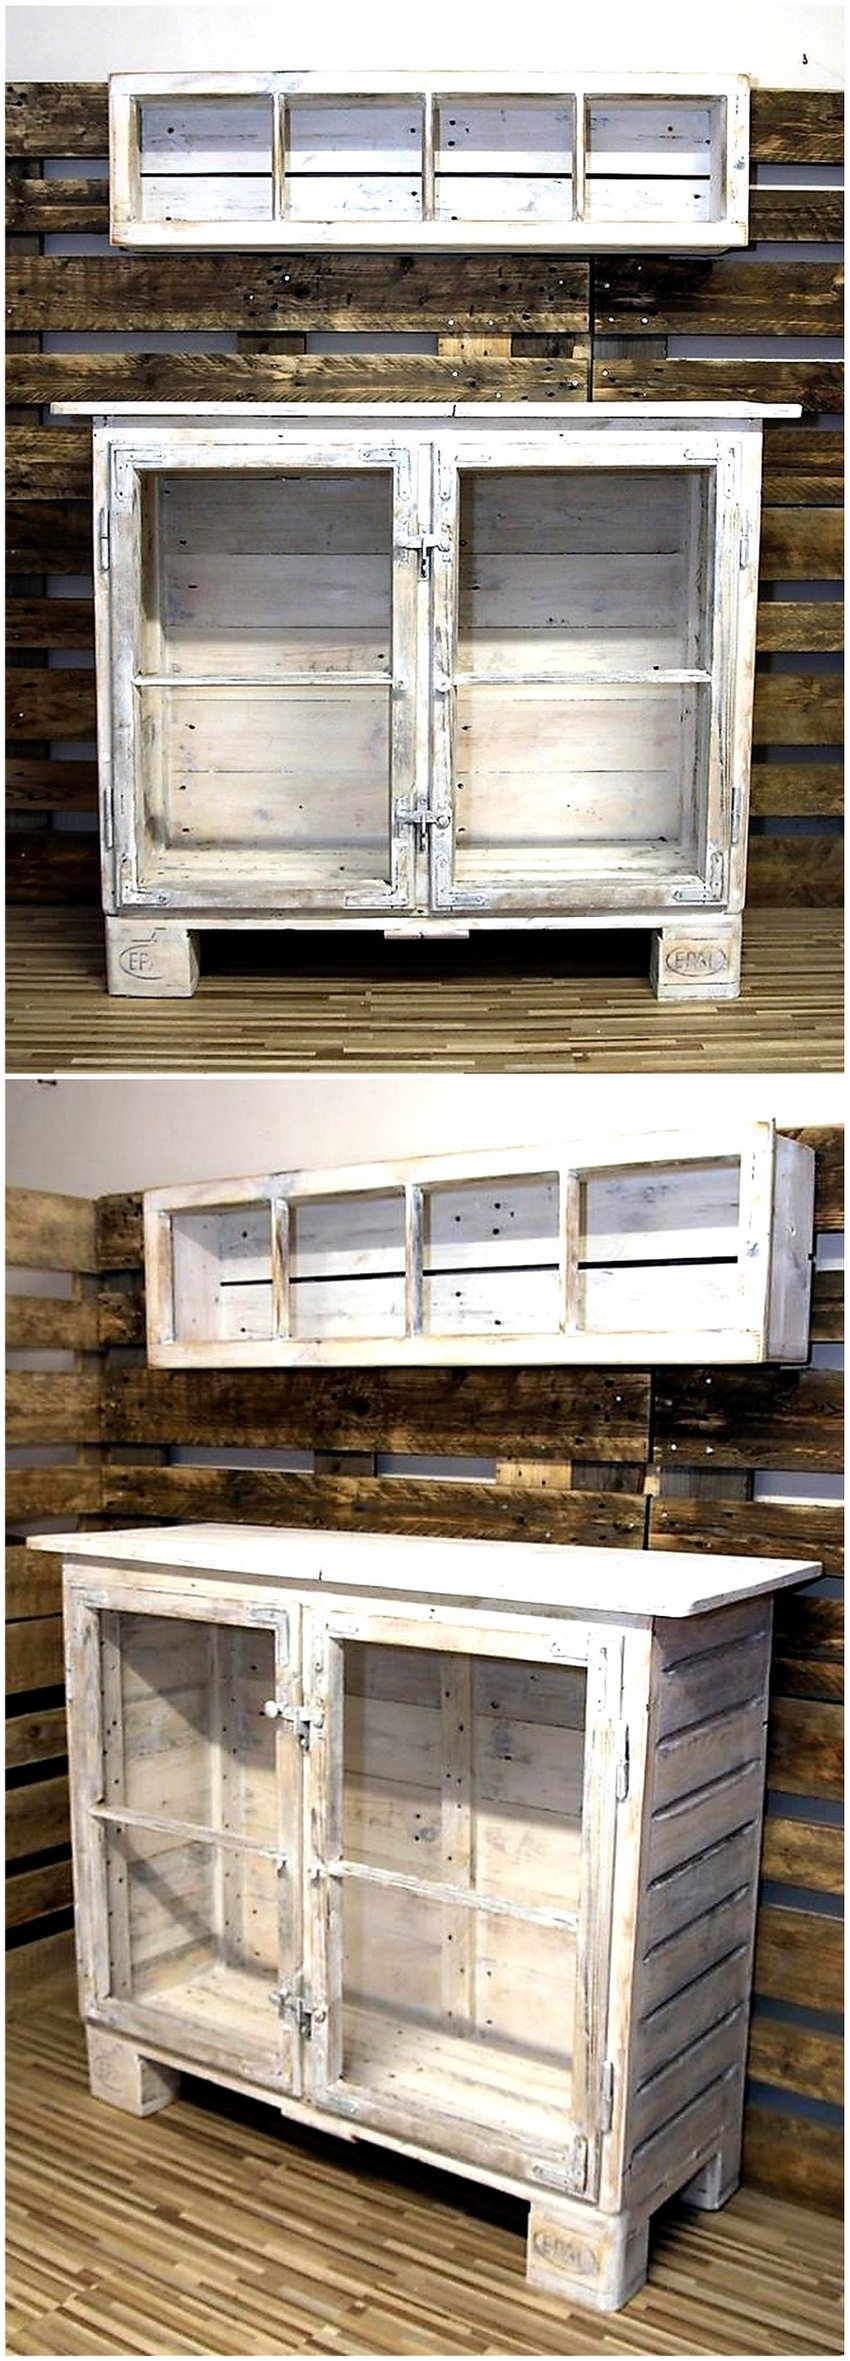 Creative Pallet Recycling Ideas by Lucie's Palettenmöbel ...